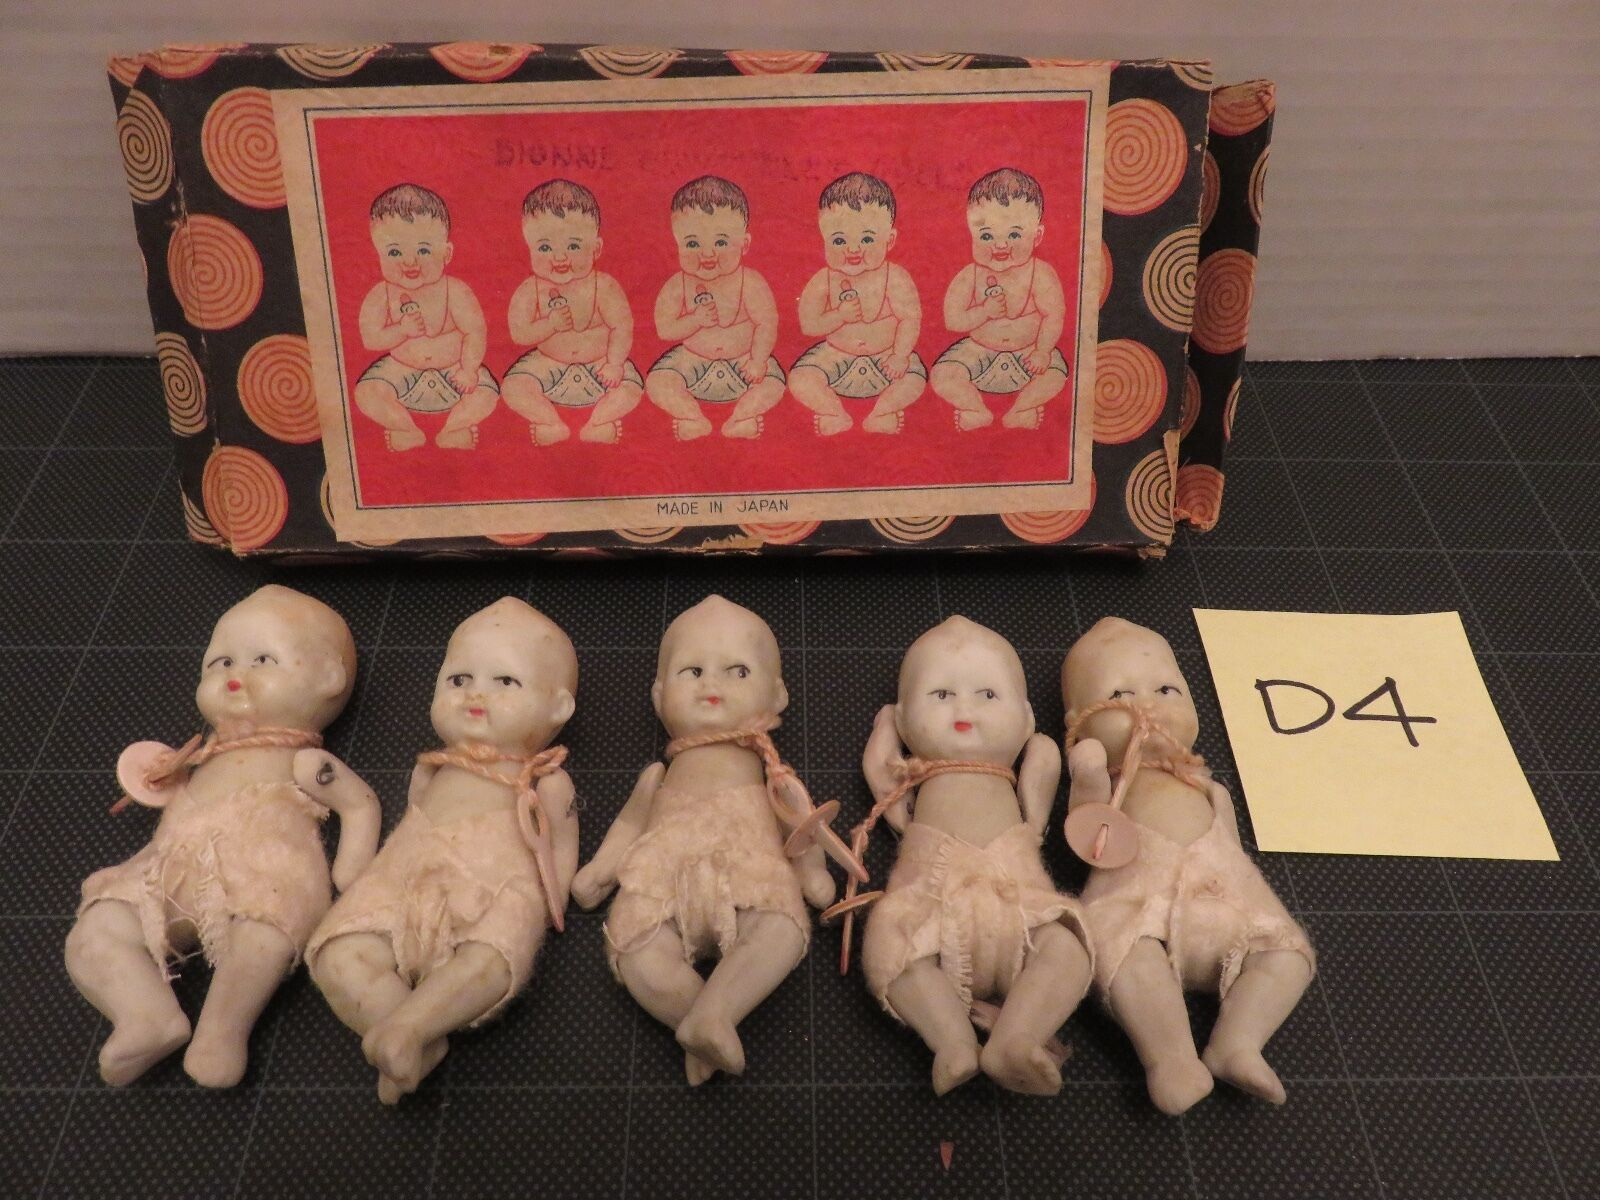 Bisque Porcelain Jointed Quintuplet Dolls Made in Japan Original Box D4 Arm Move